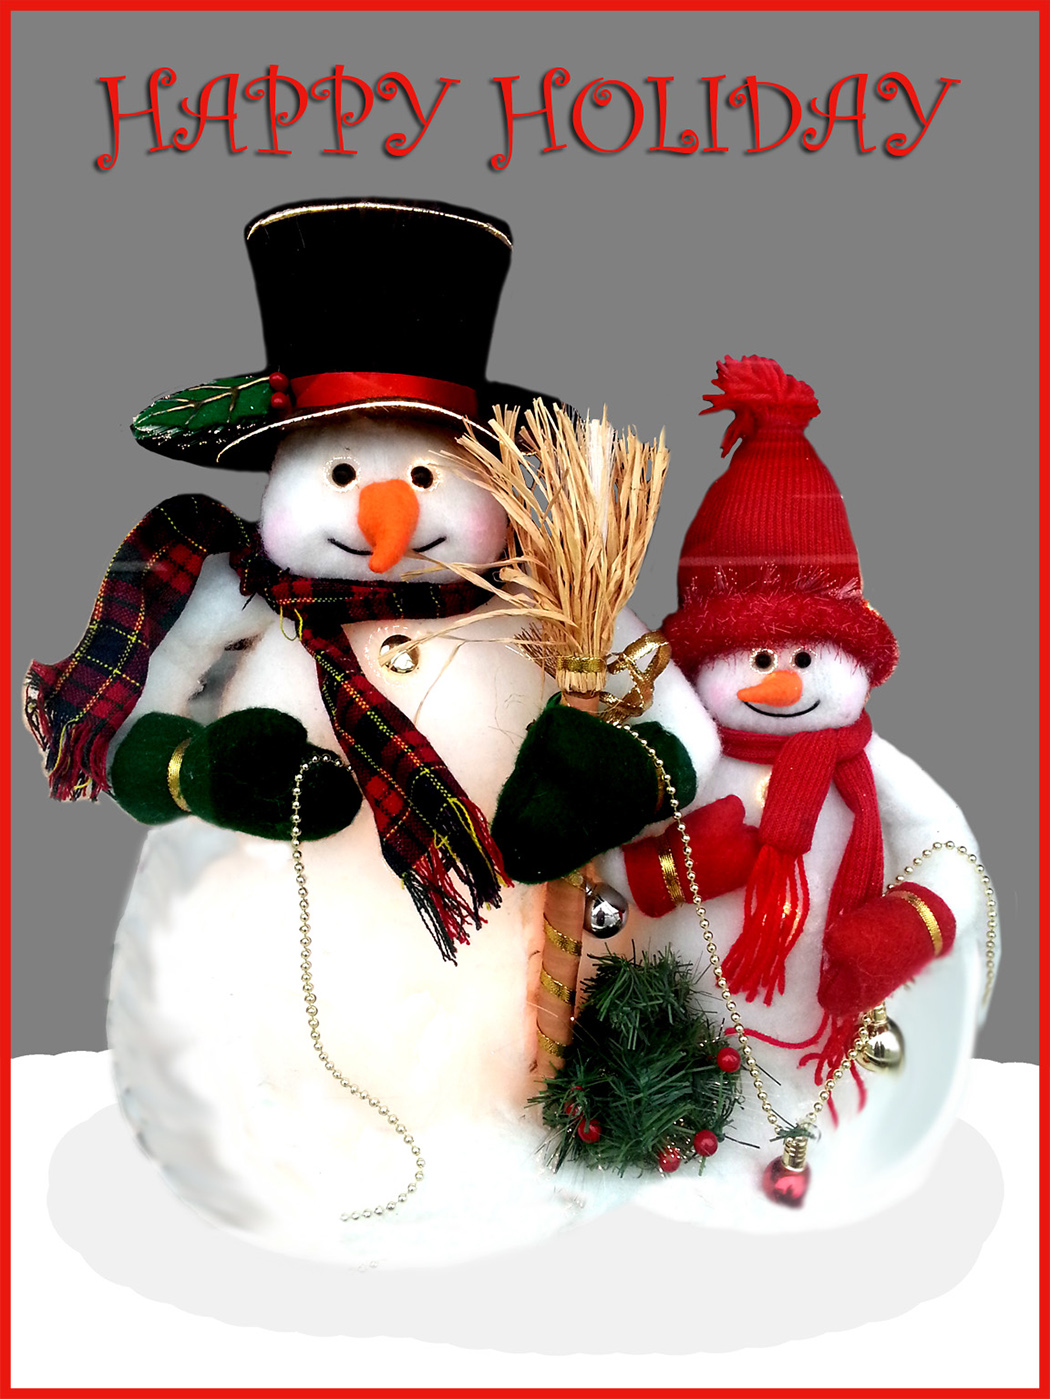 Two Snowmen With Christmas Wish If You Want To Find More Free Printable Cards